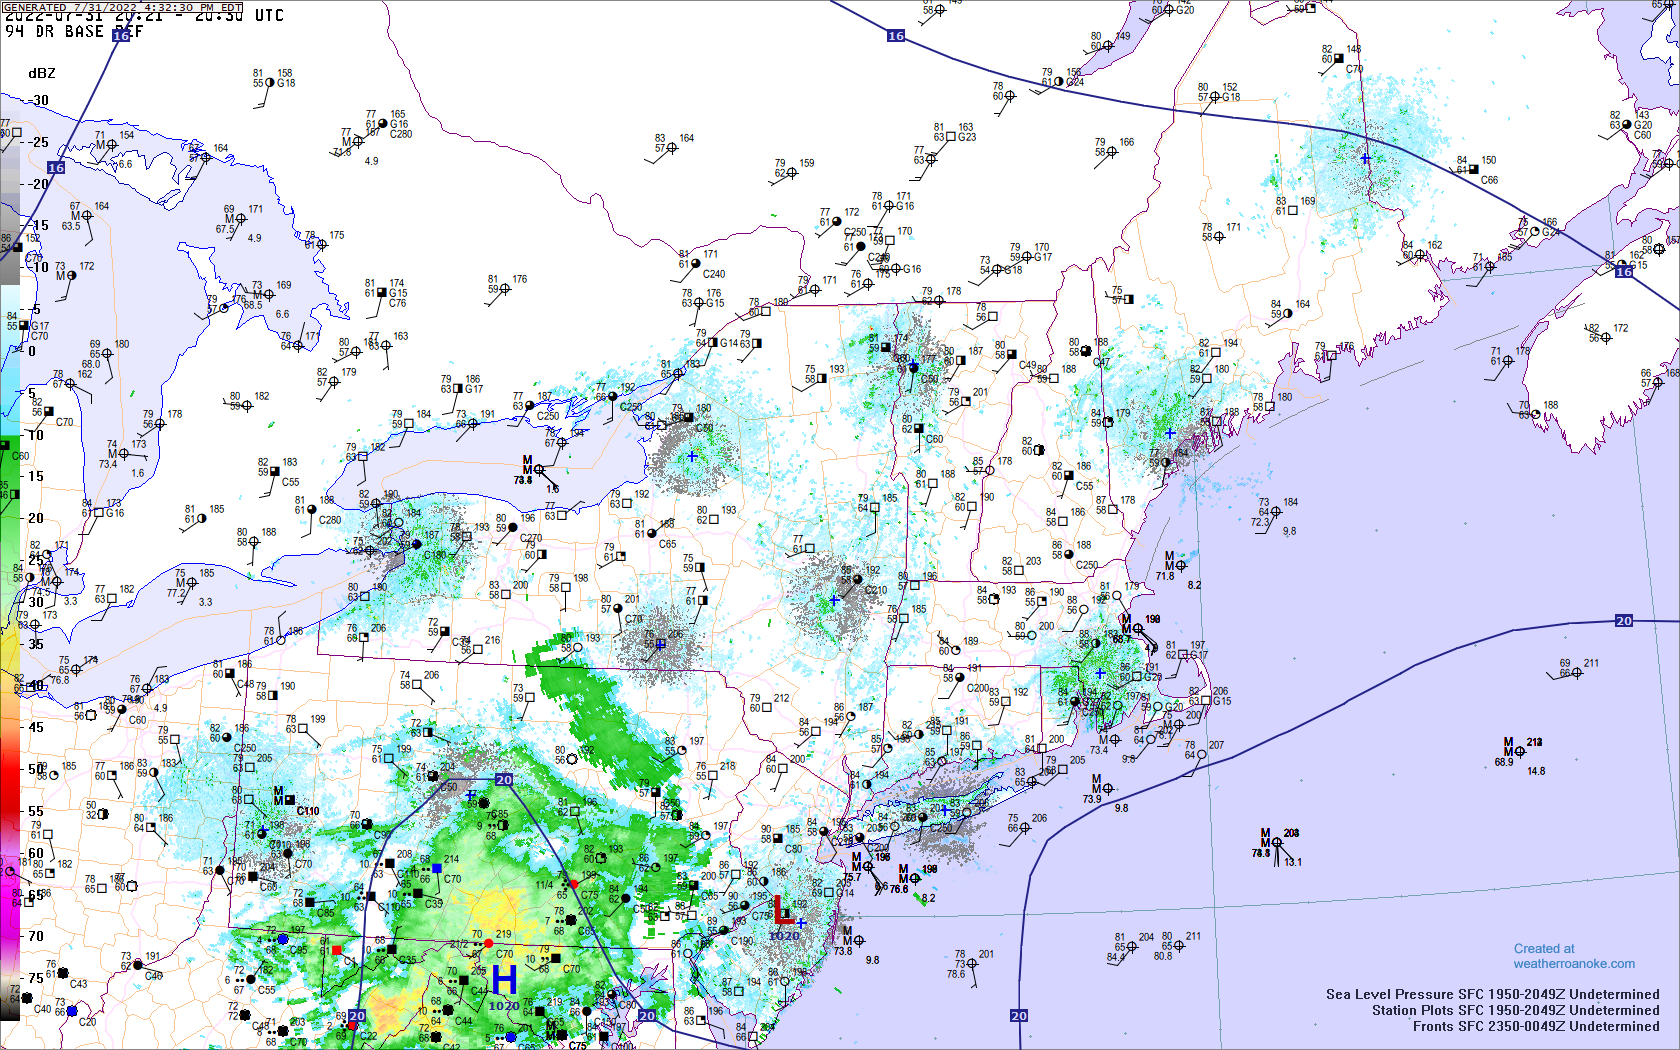 New England surface map